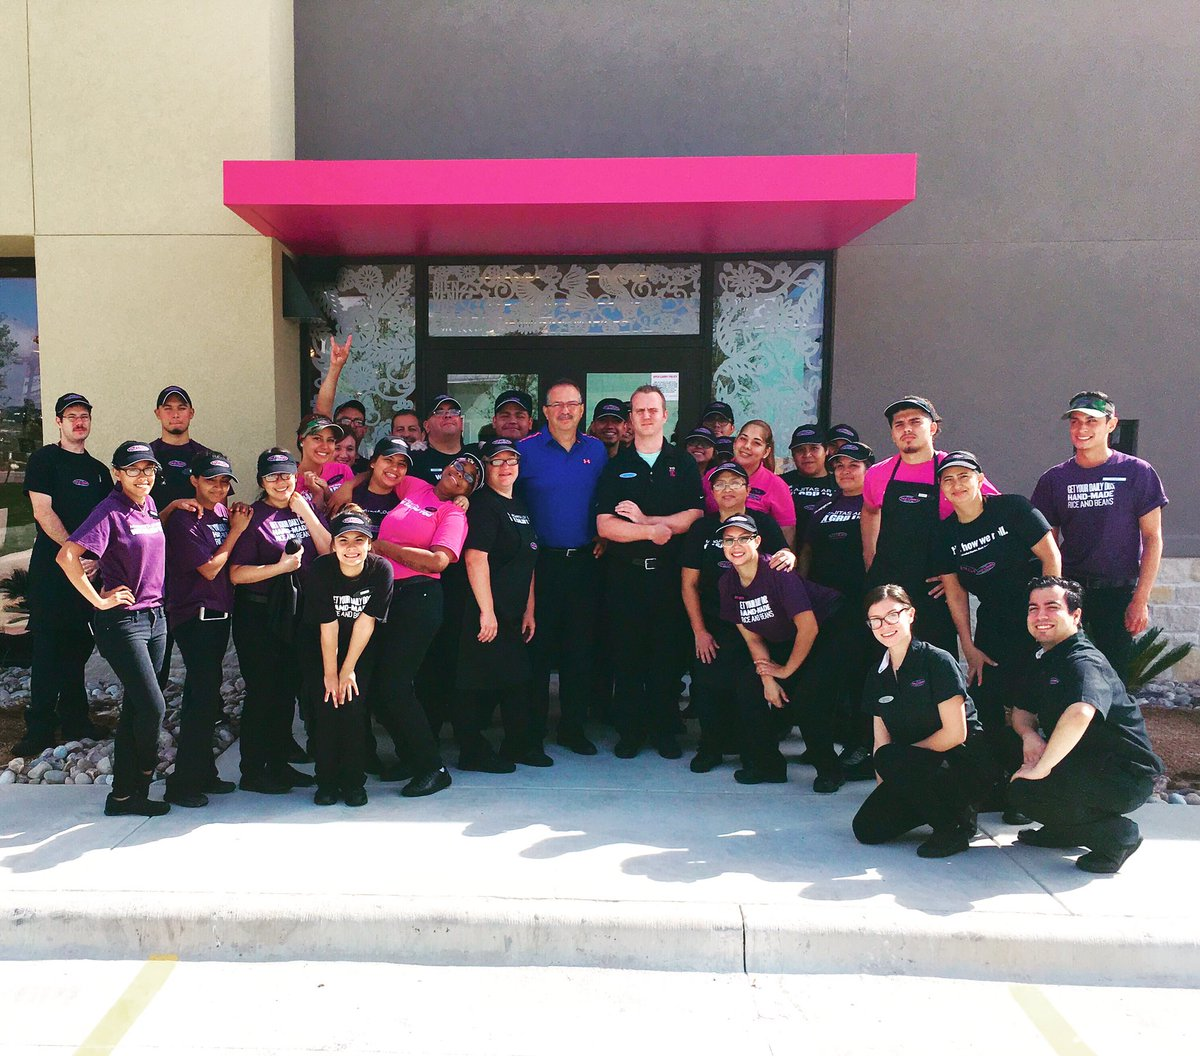 We are officially open in Kyle! Come see us at the northeast corner of I-35 and Kyle Parkway.